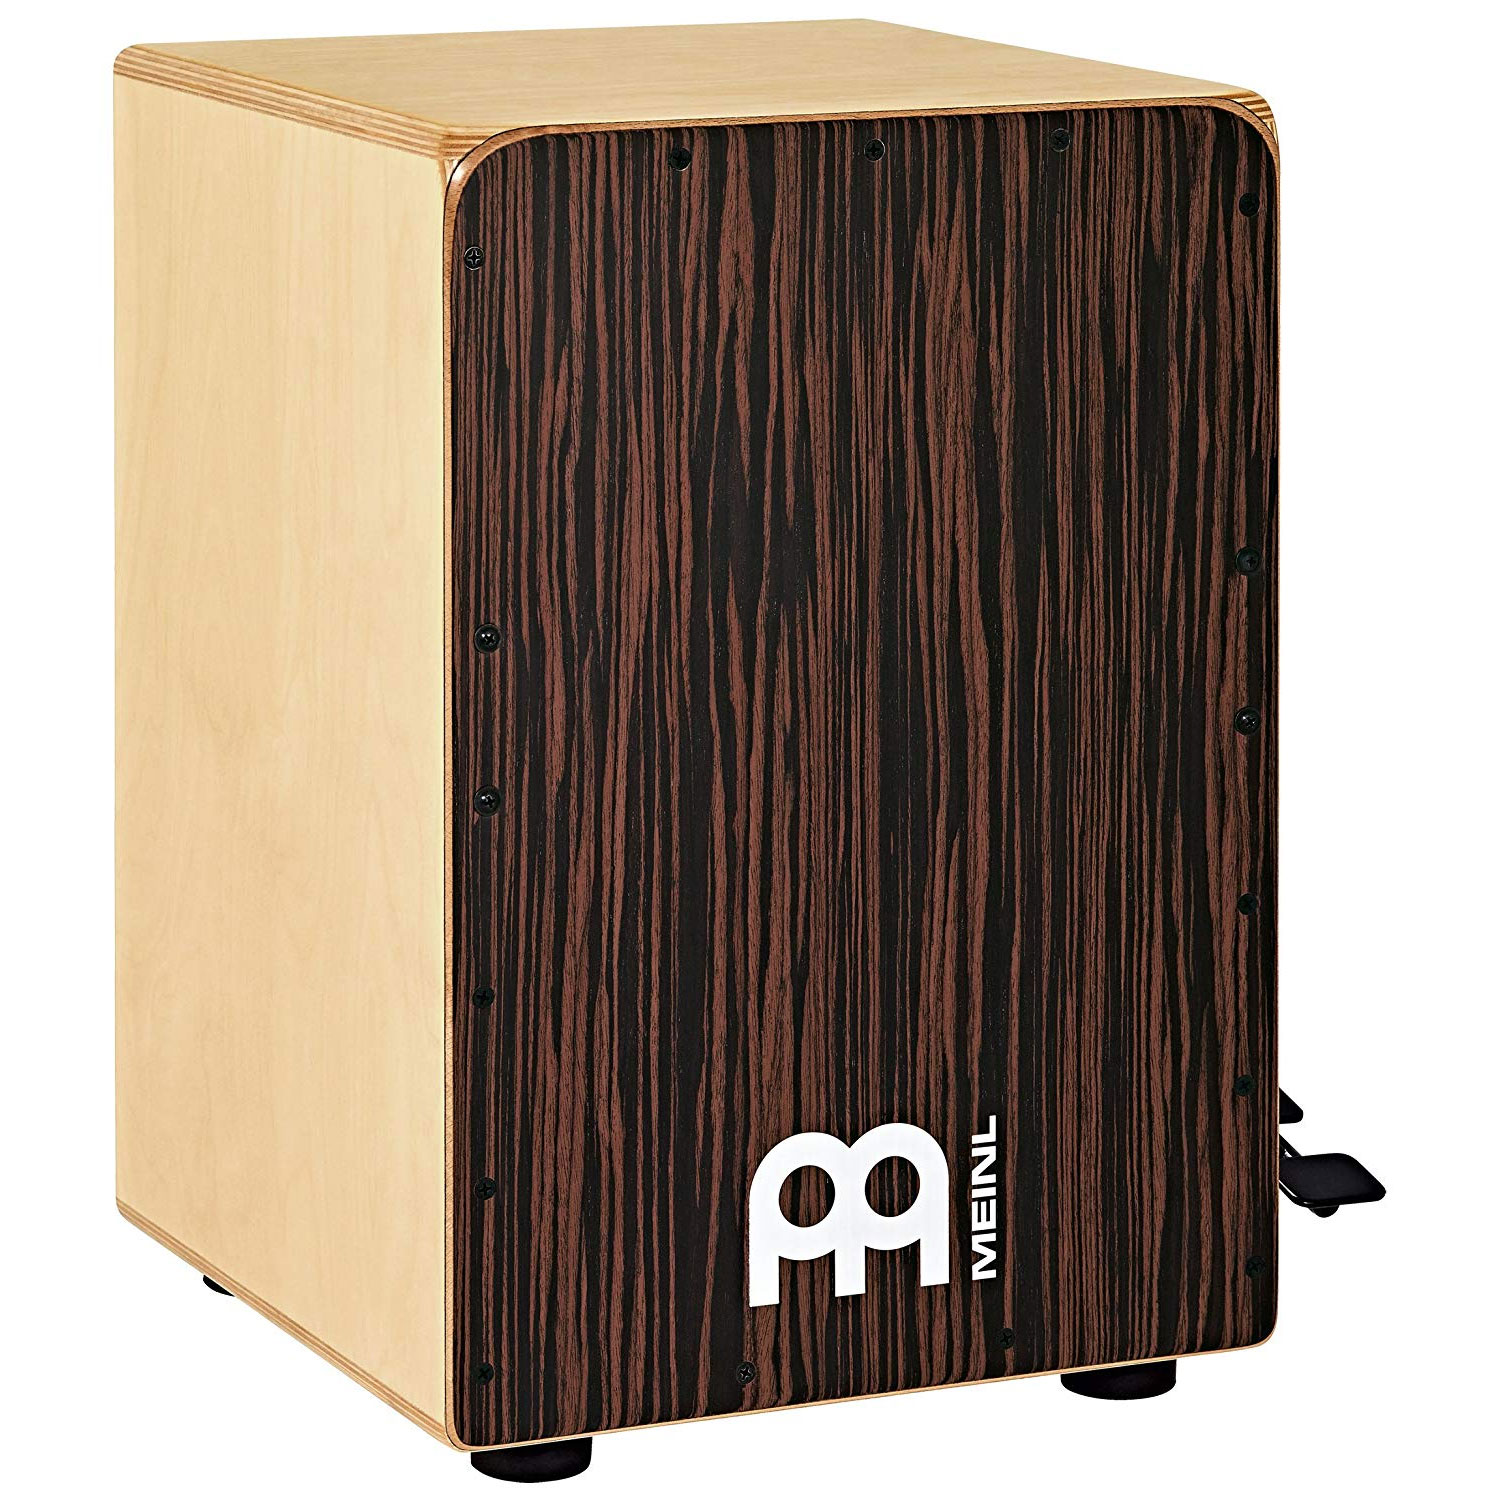 Meinl Ebony Bass Cajon with Snare Pedal with Ebony Frontplate